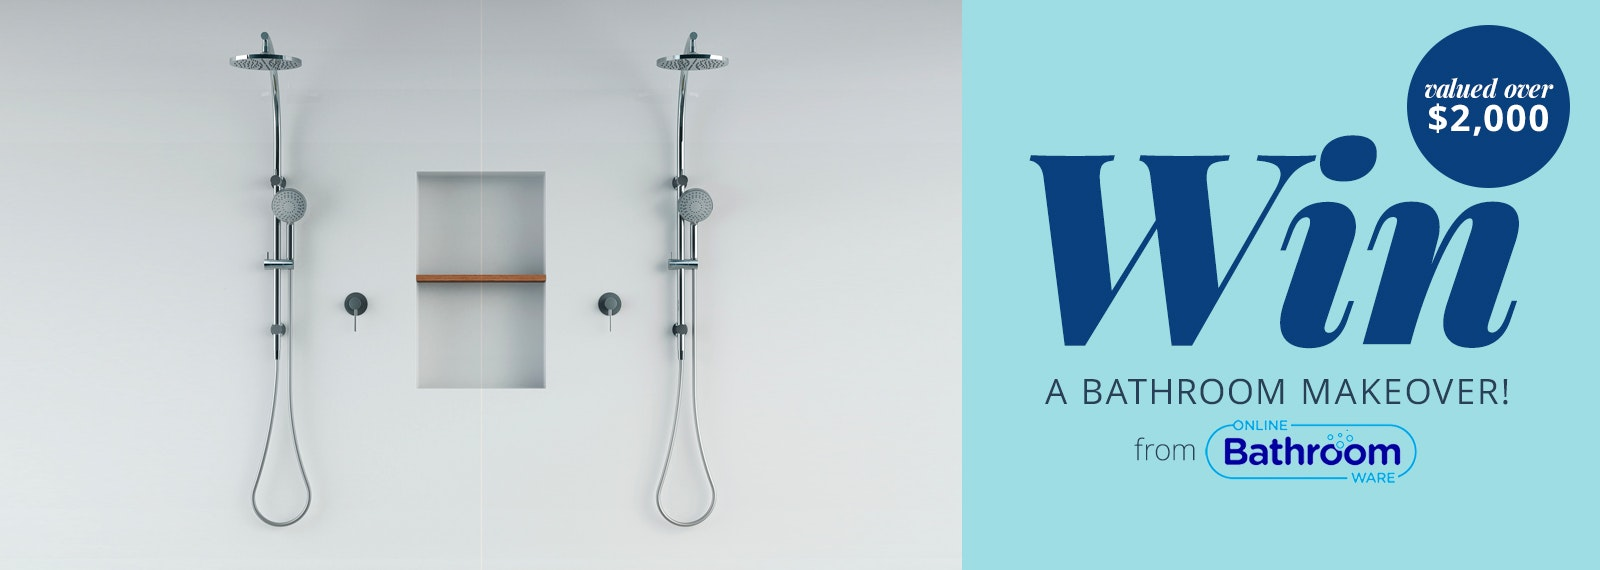 Win a bathroom valued at over $2,000 from Online Bathroomware